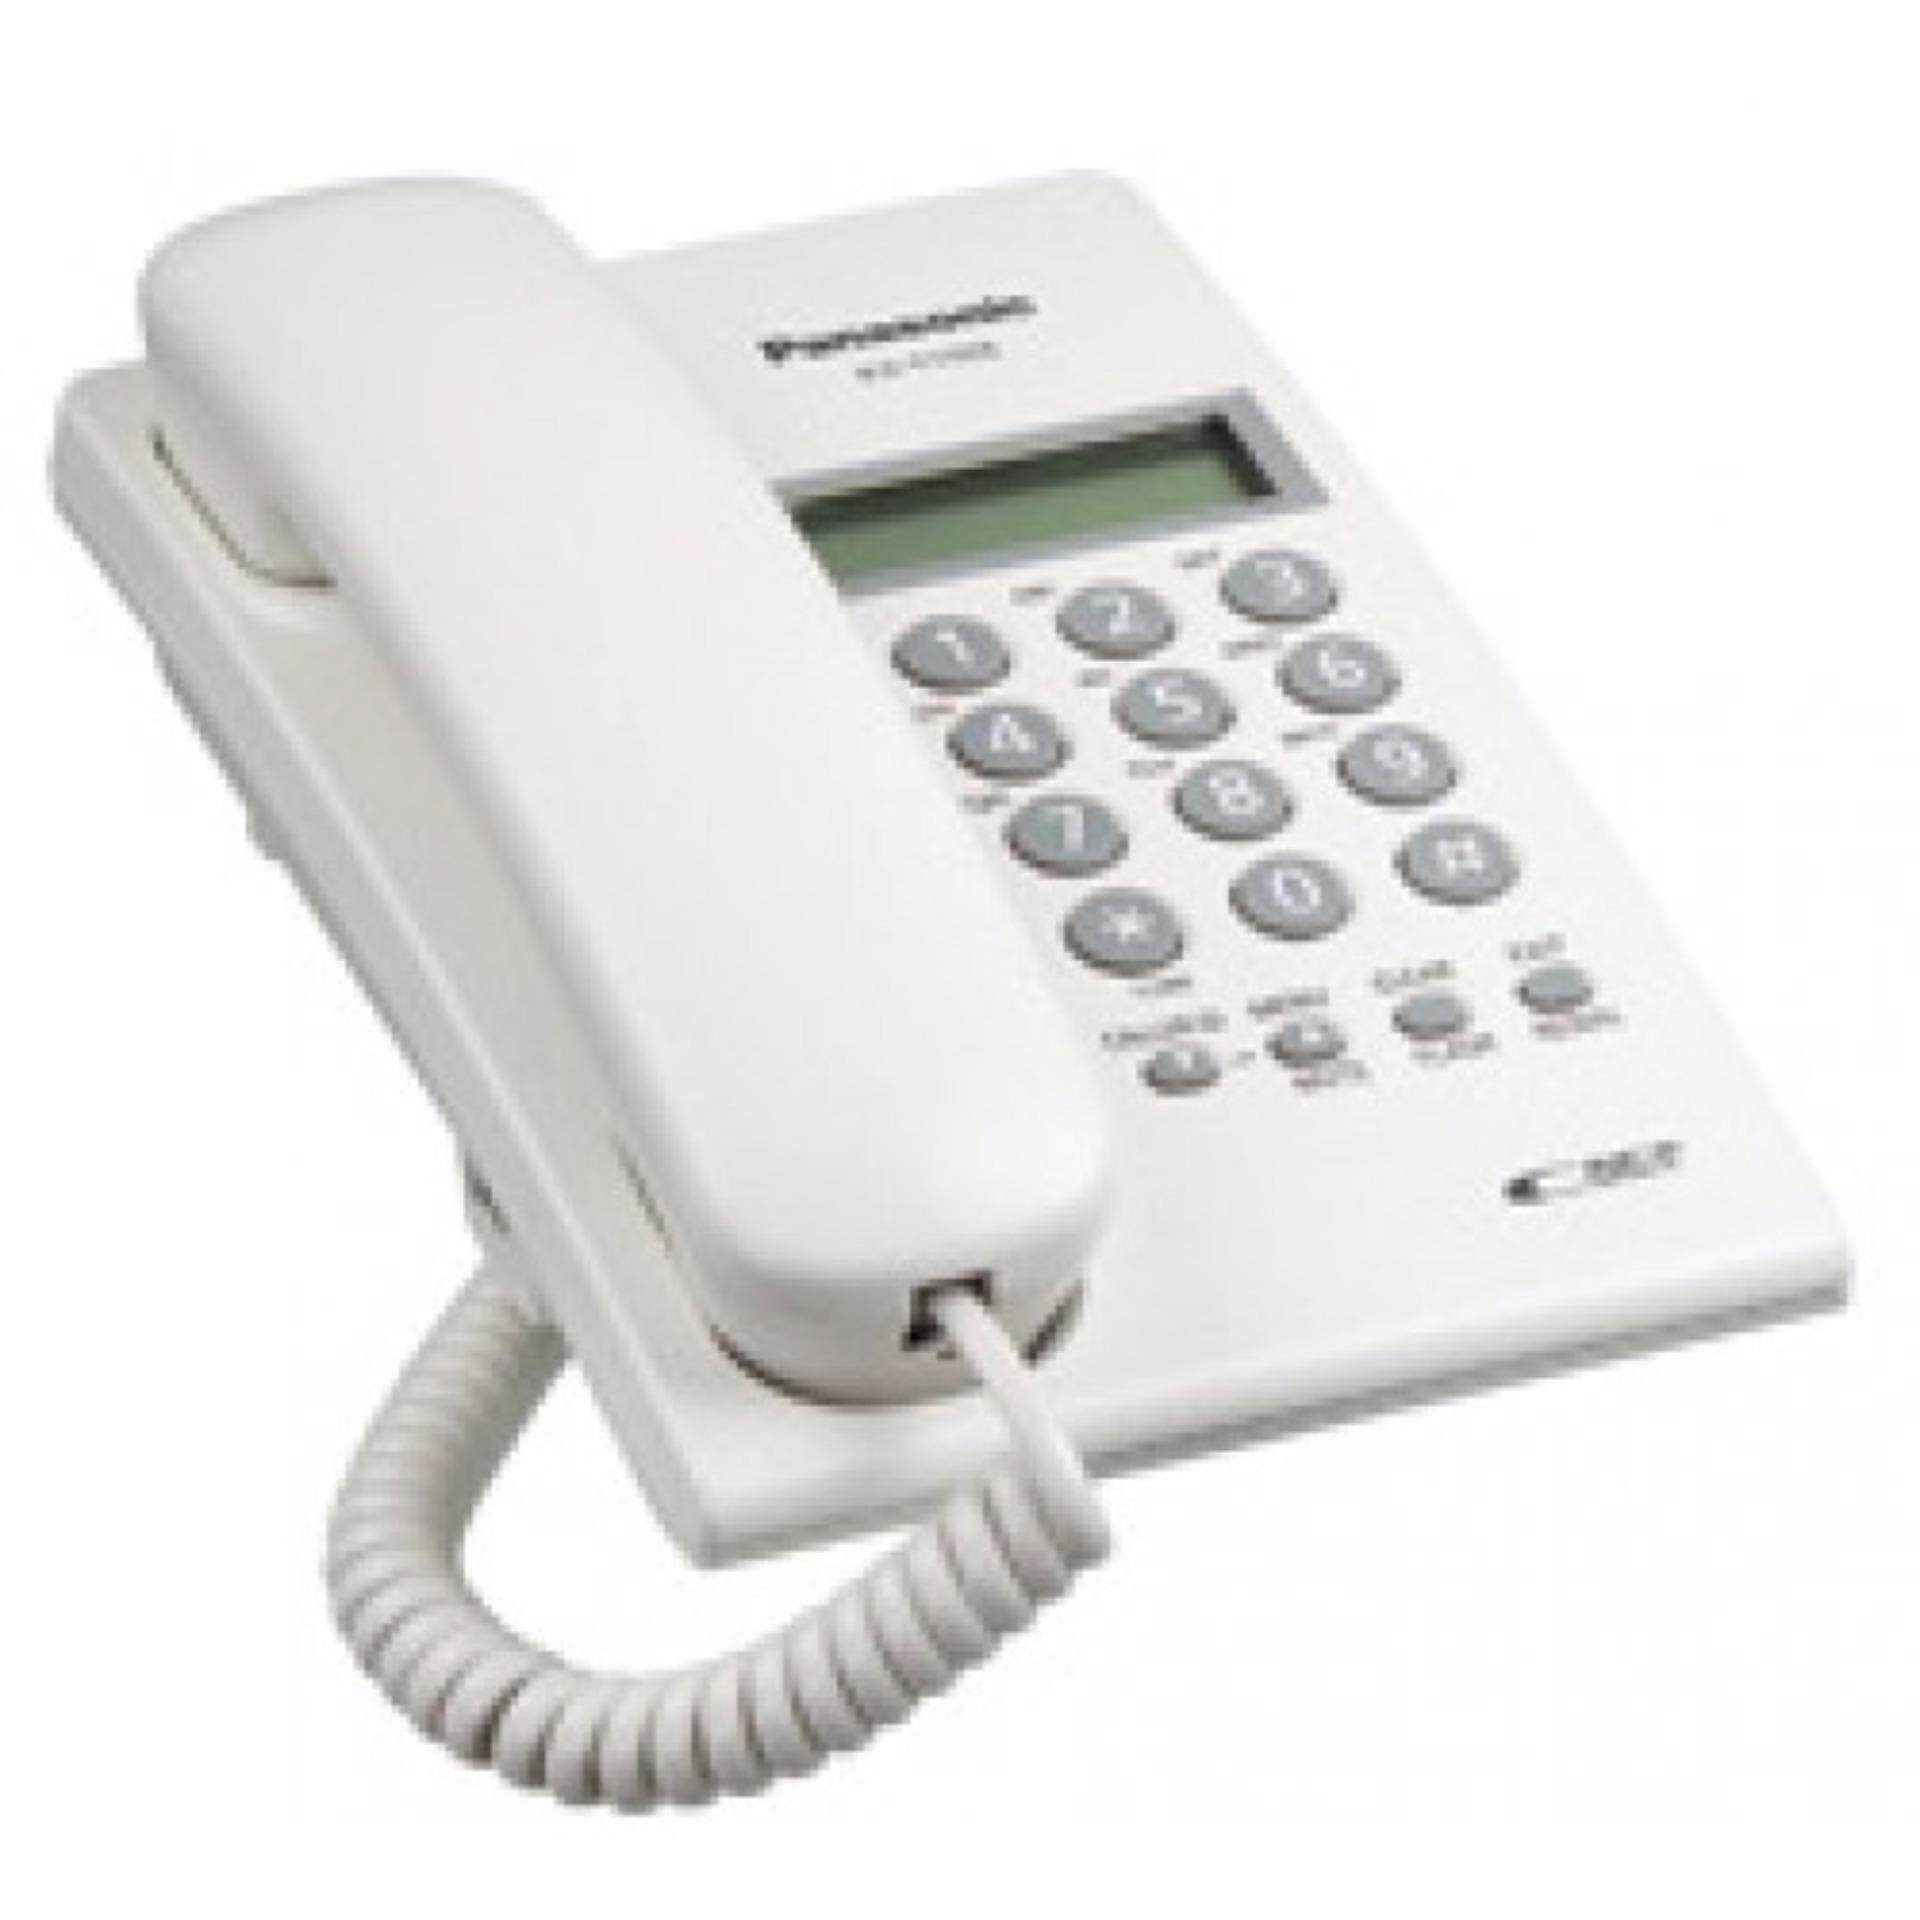 Panasonic keyphone Phone KX-T7703X ( 3 years warranty )